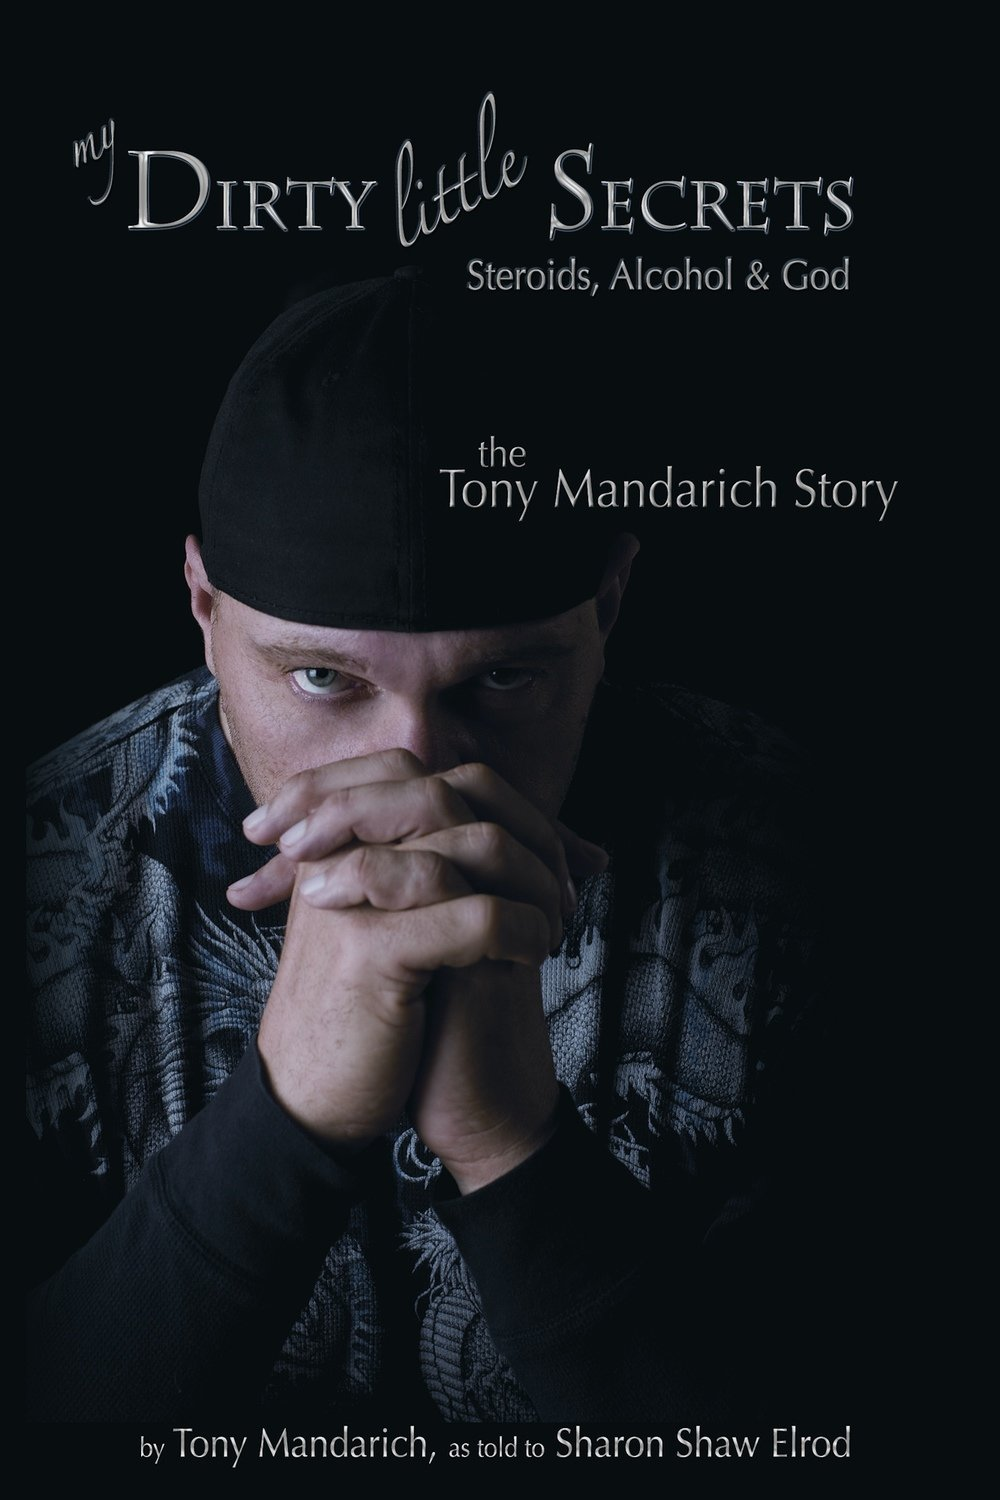 My Dirty Little Secrets - Steroids, Alcohol & Drugs: The Tony Mandarich Story.